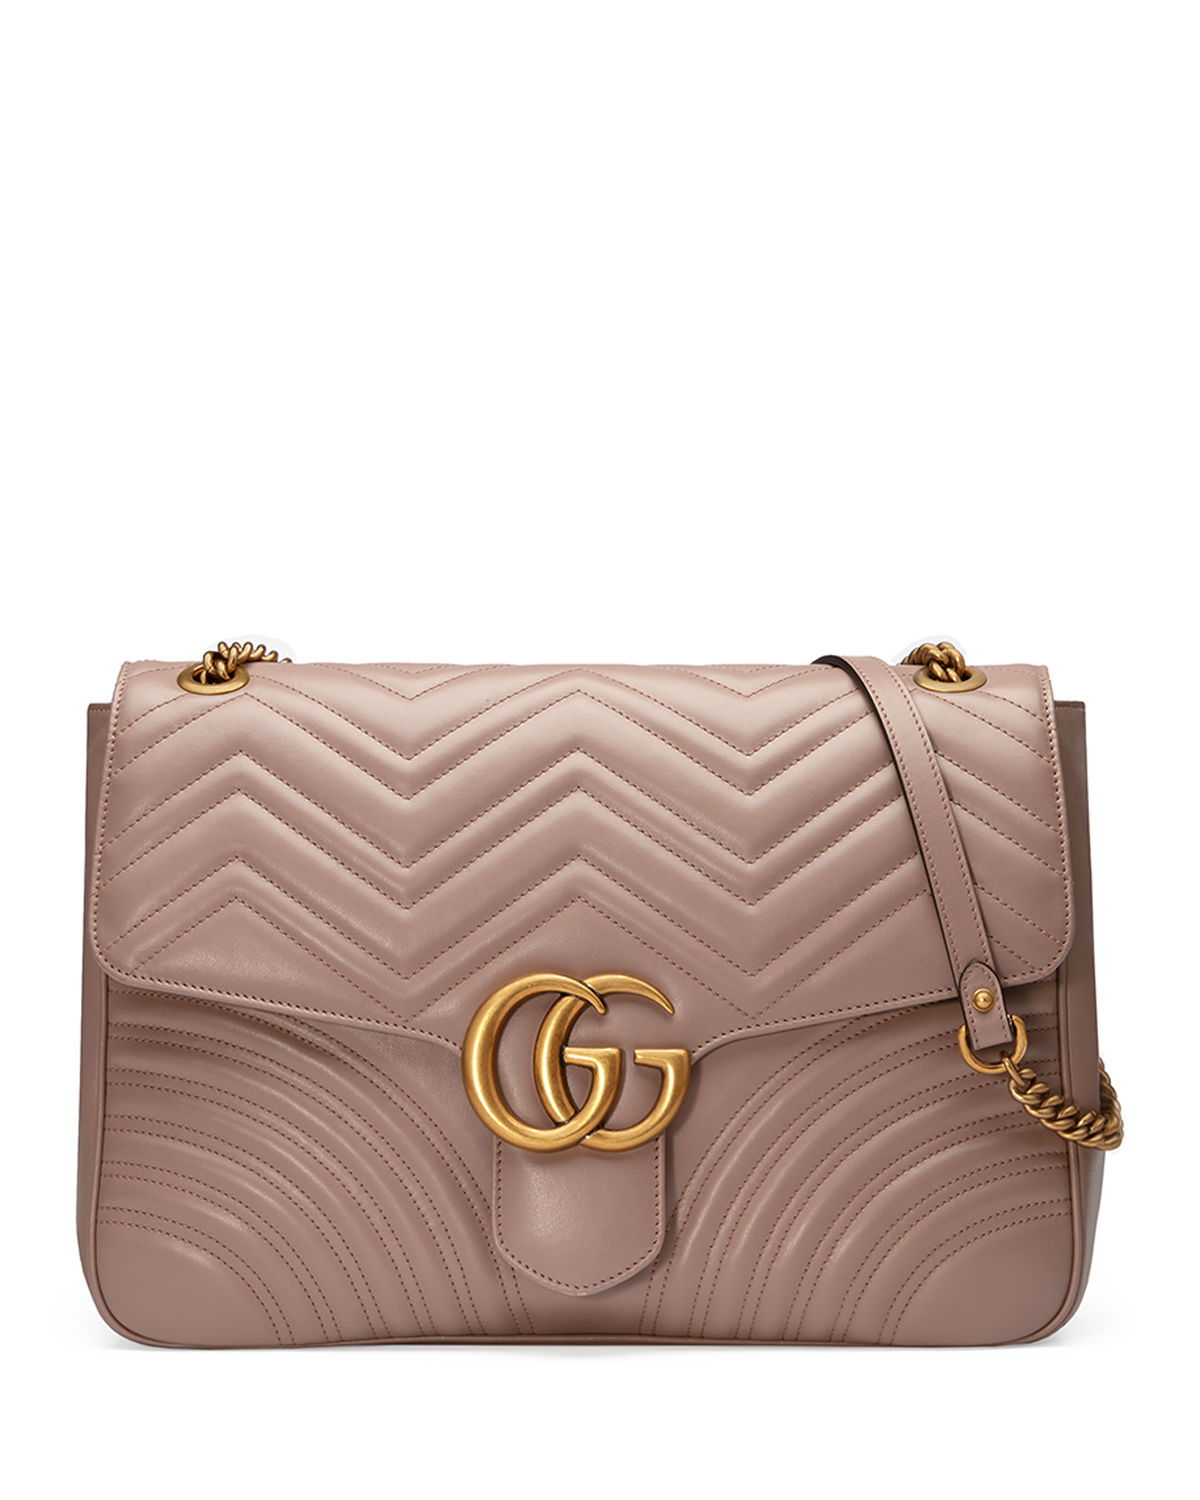 cf512ceb884 Gucci GG Marmont Large Chevron Quilted Leather Shoulder Bag